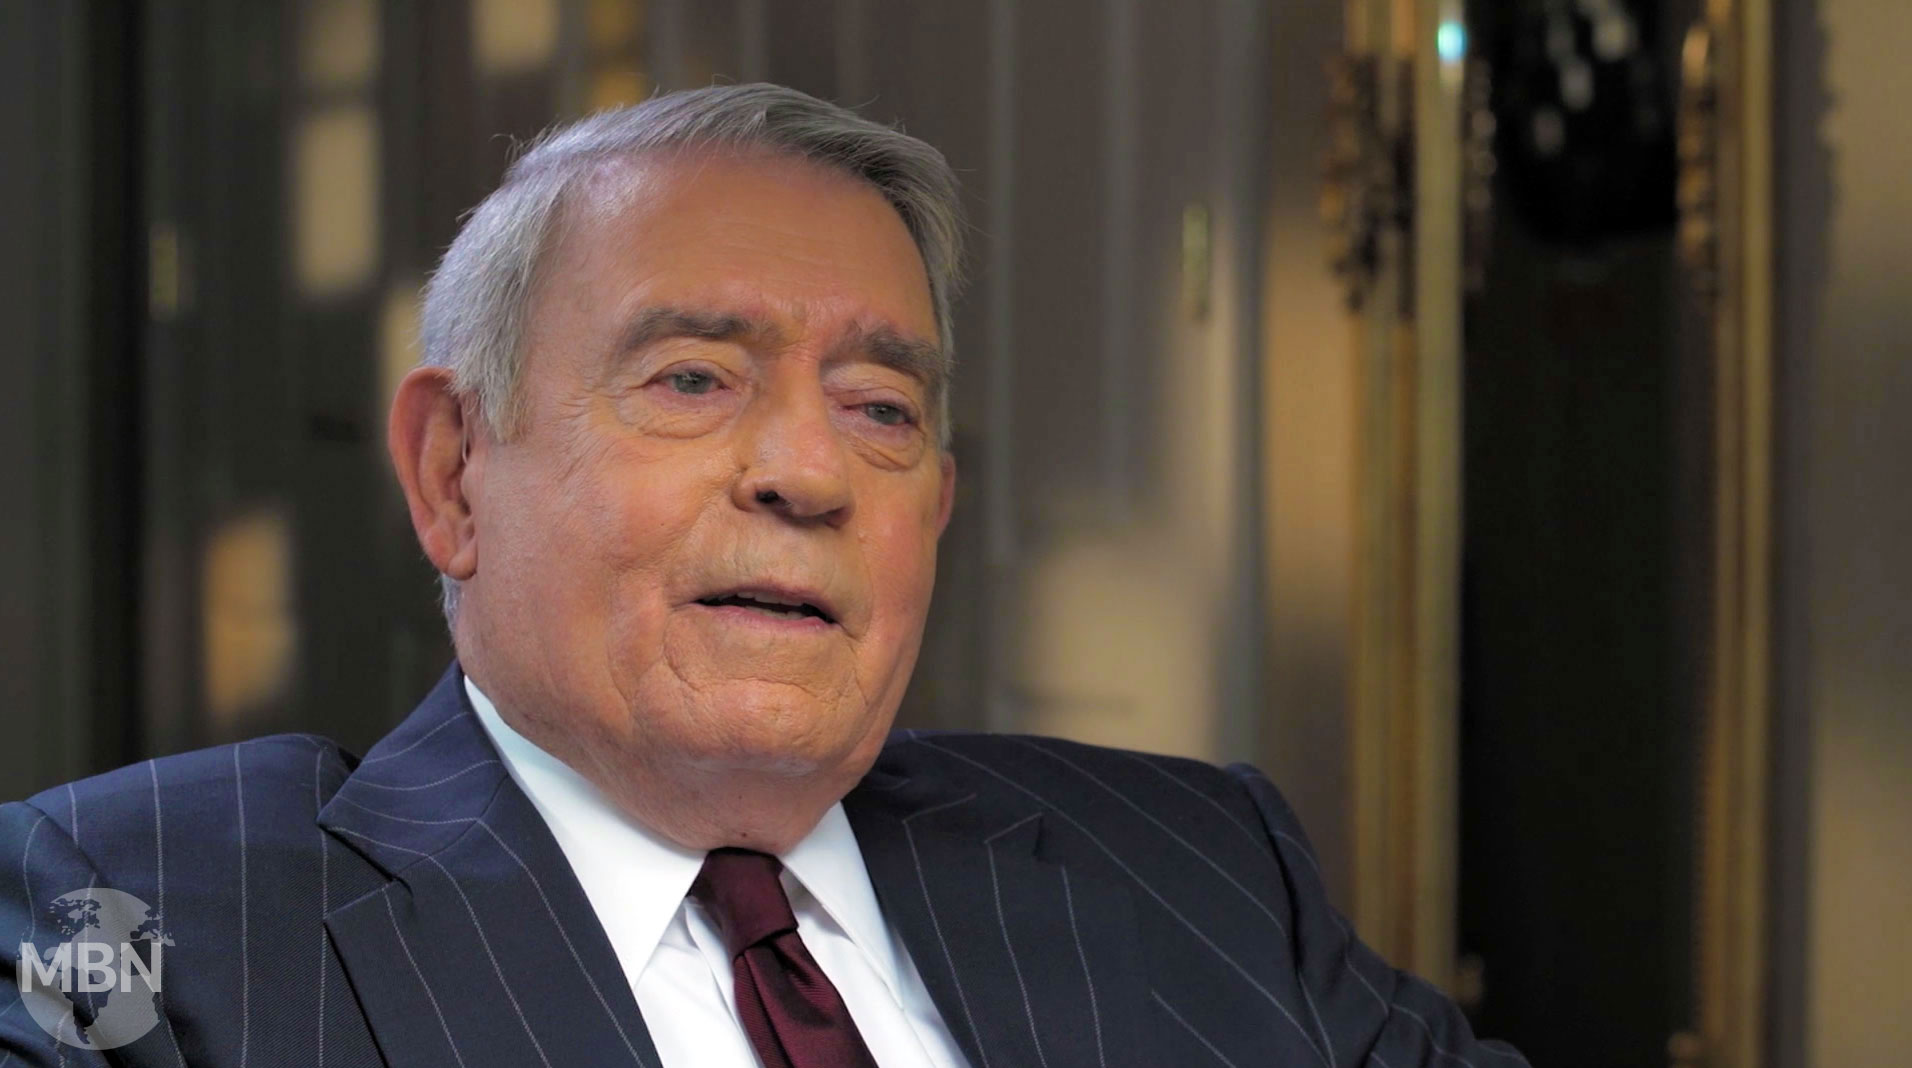 Dan Rather: Courage Under Fire